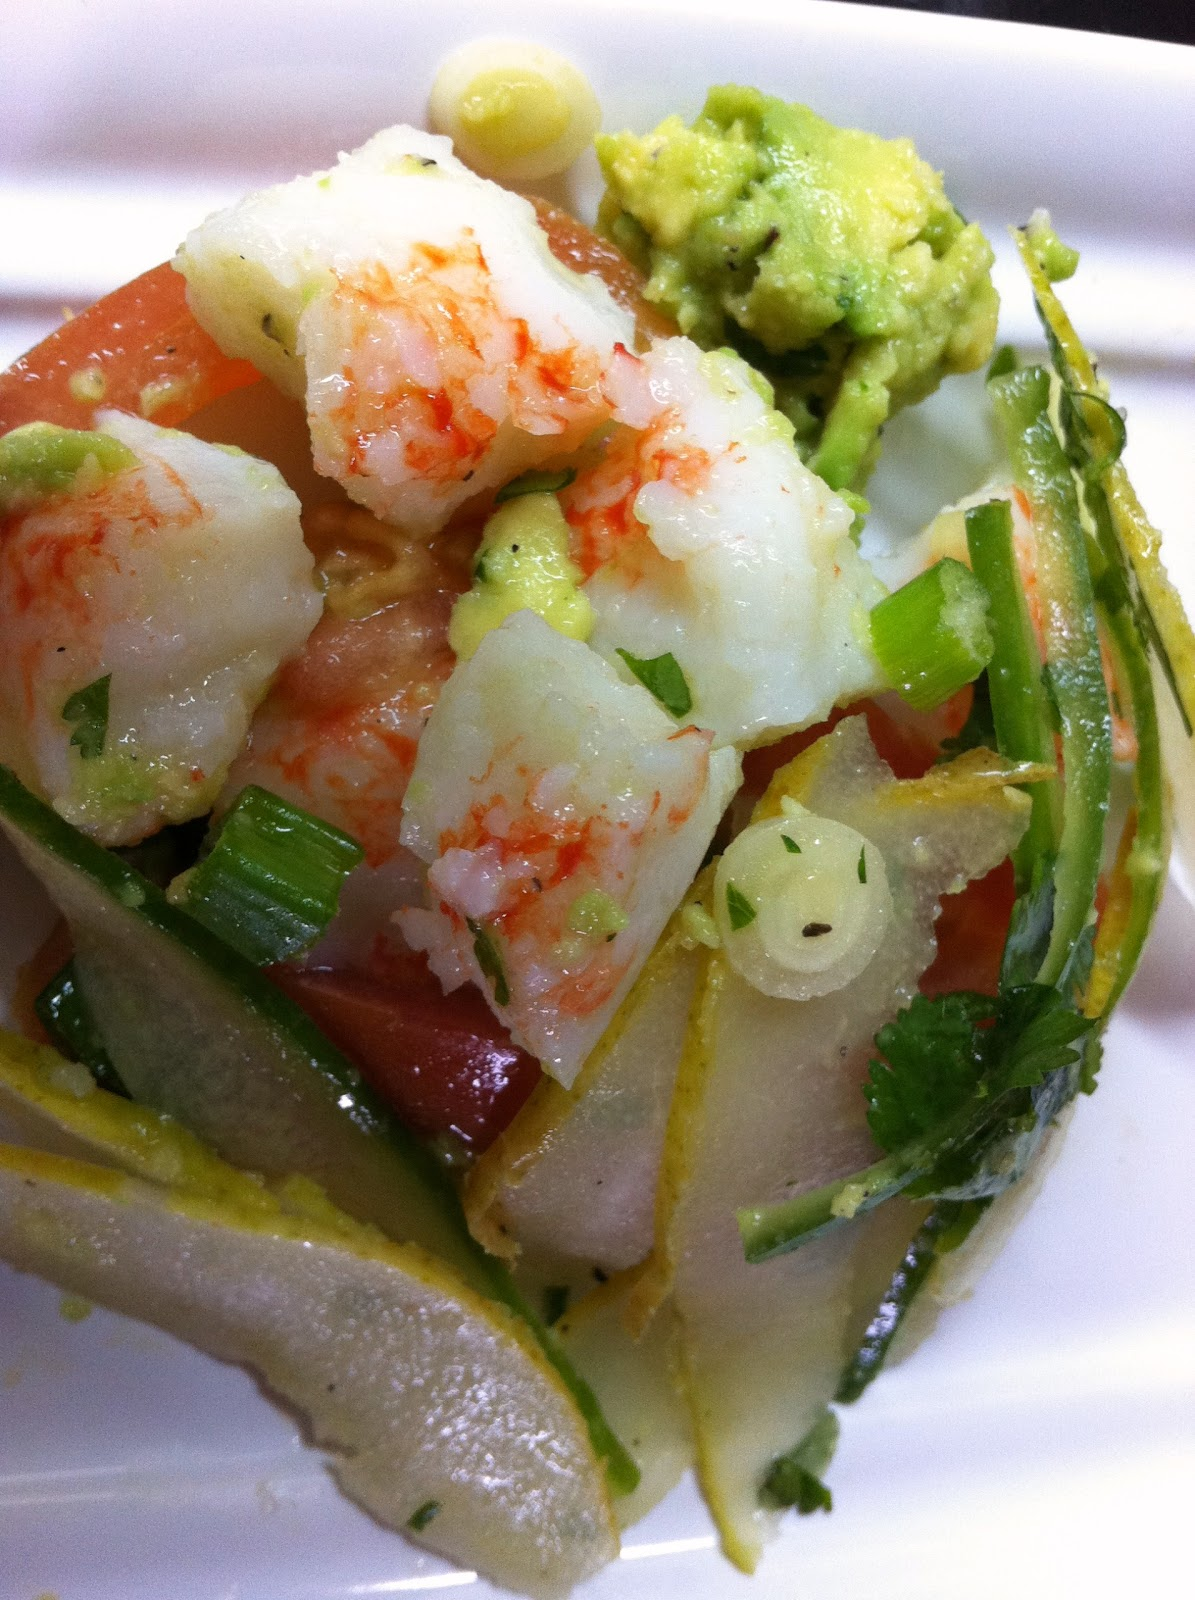 Skinny Simple Recipes: Imitation Lobster Salad